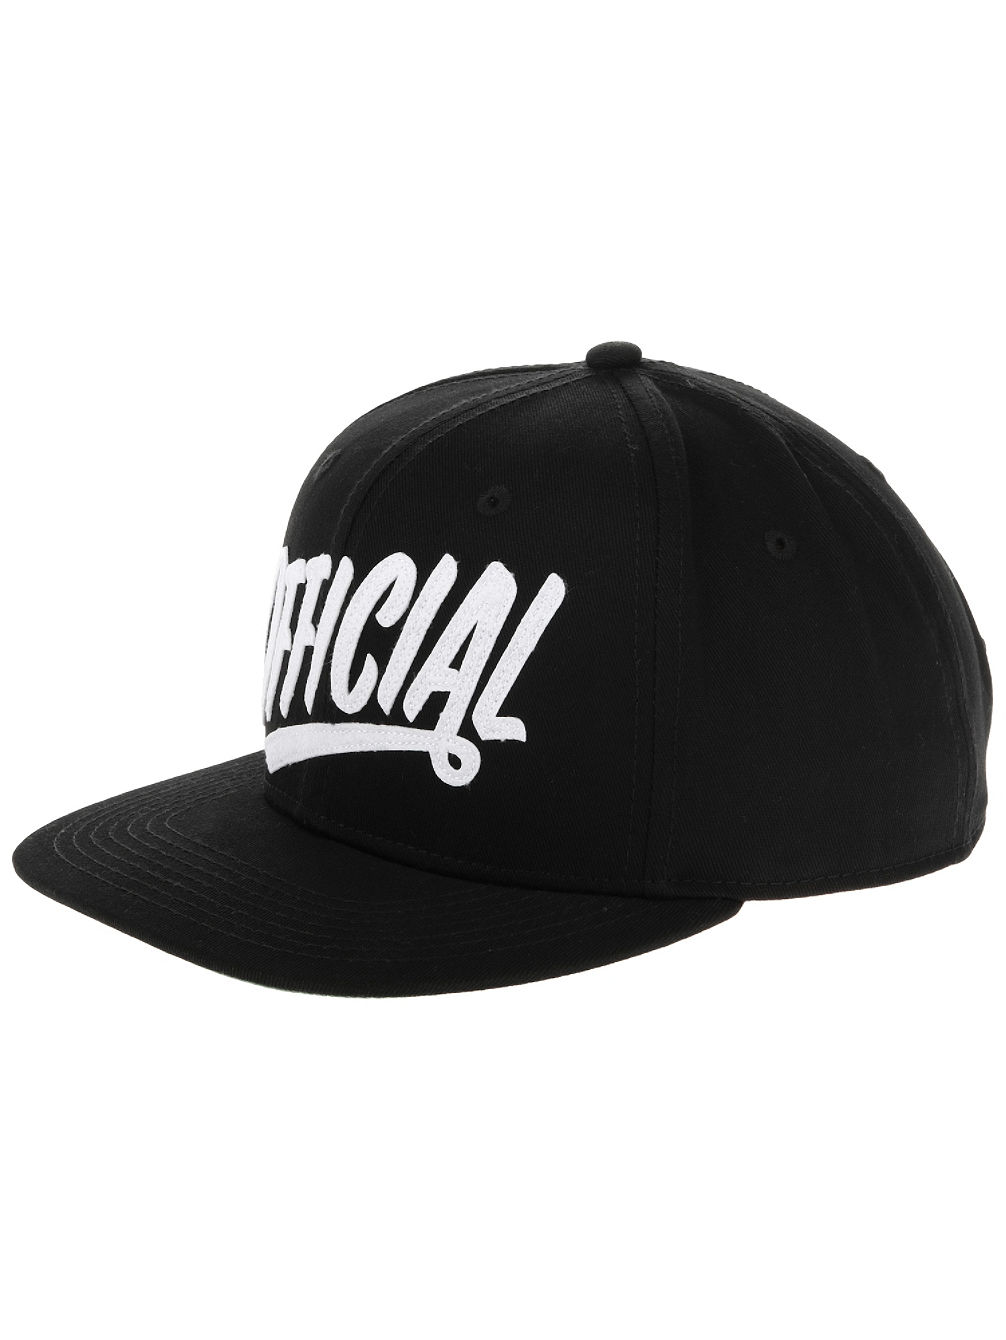 the-official-dolo-stone-cap